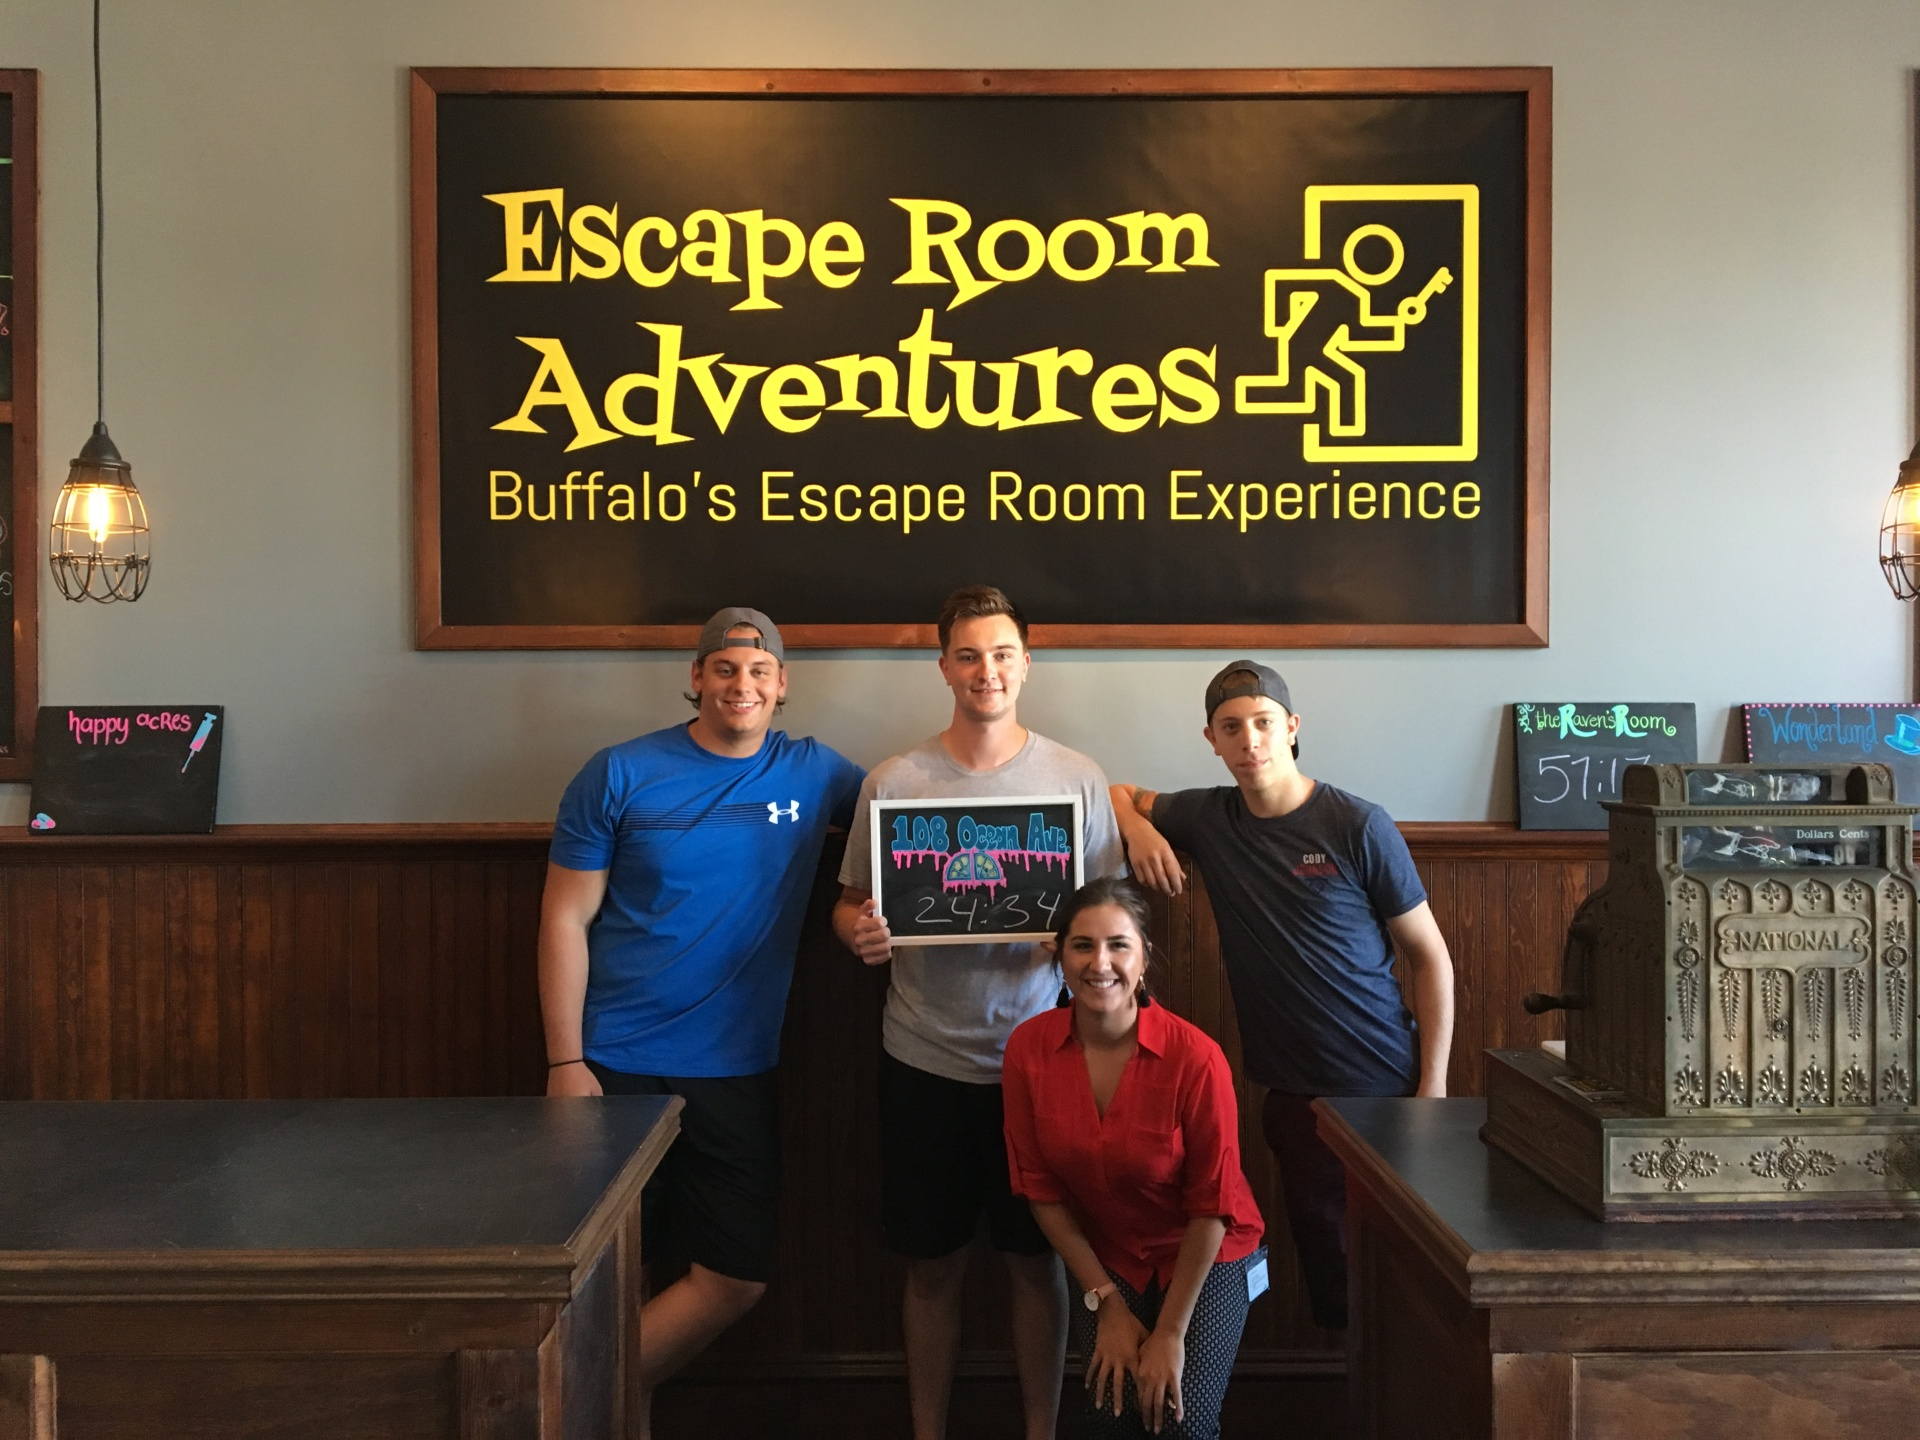 Escape Room Adventures WNY, Escape Room Buffalo, Escape Room, leader-board, fastest time, escape room in Buffalo, buffalo new york,